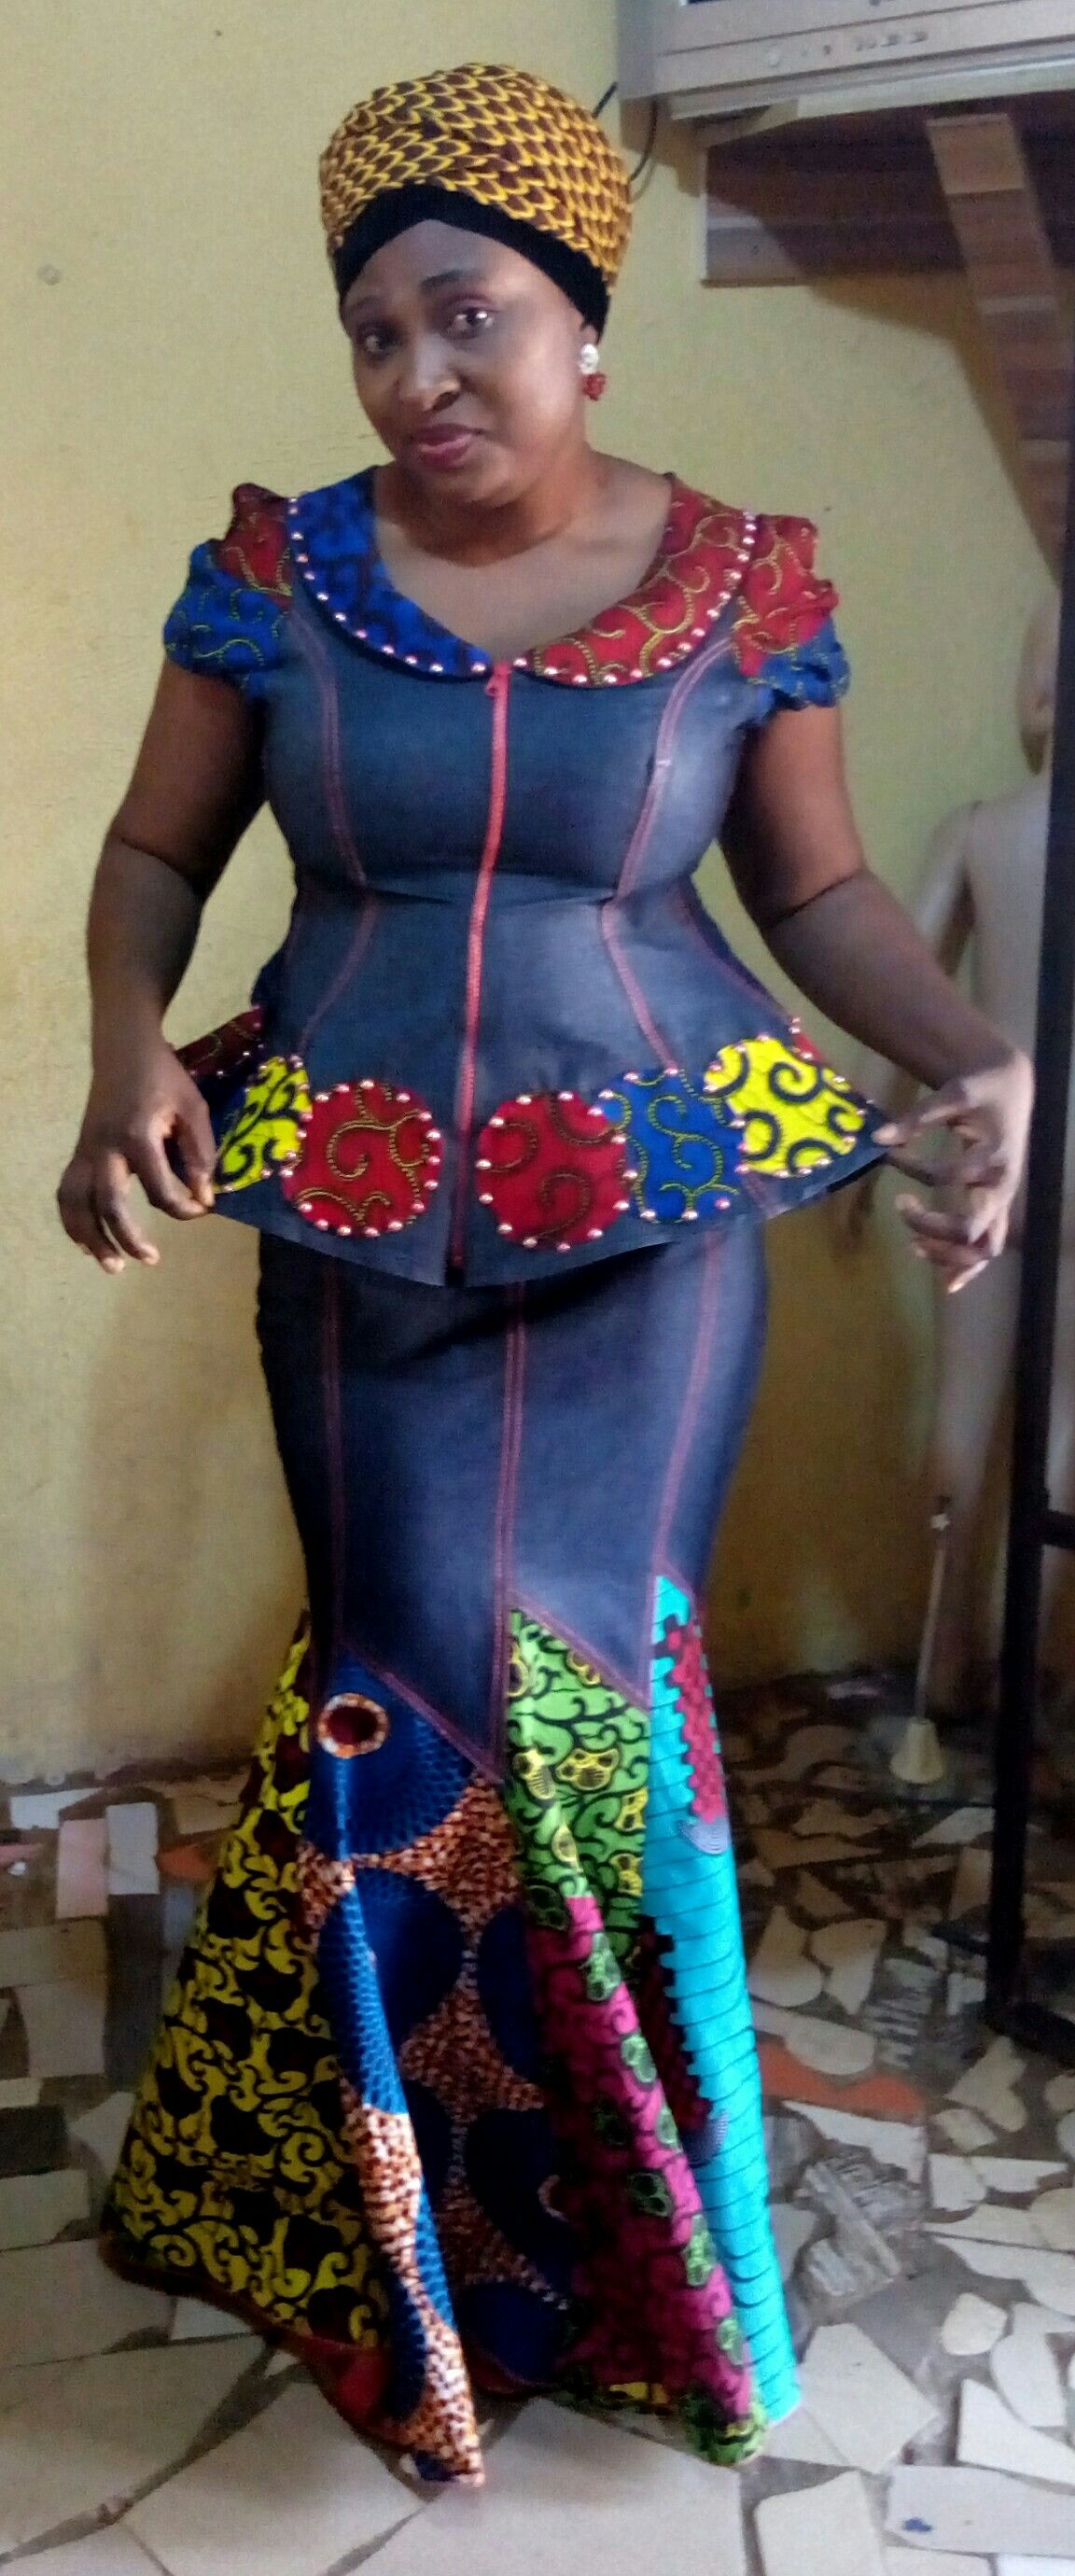 Jean Skirt And Top Adeshewa African Fashion African Fashion